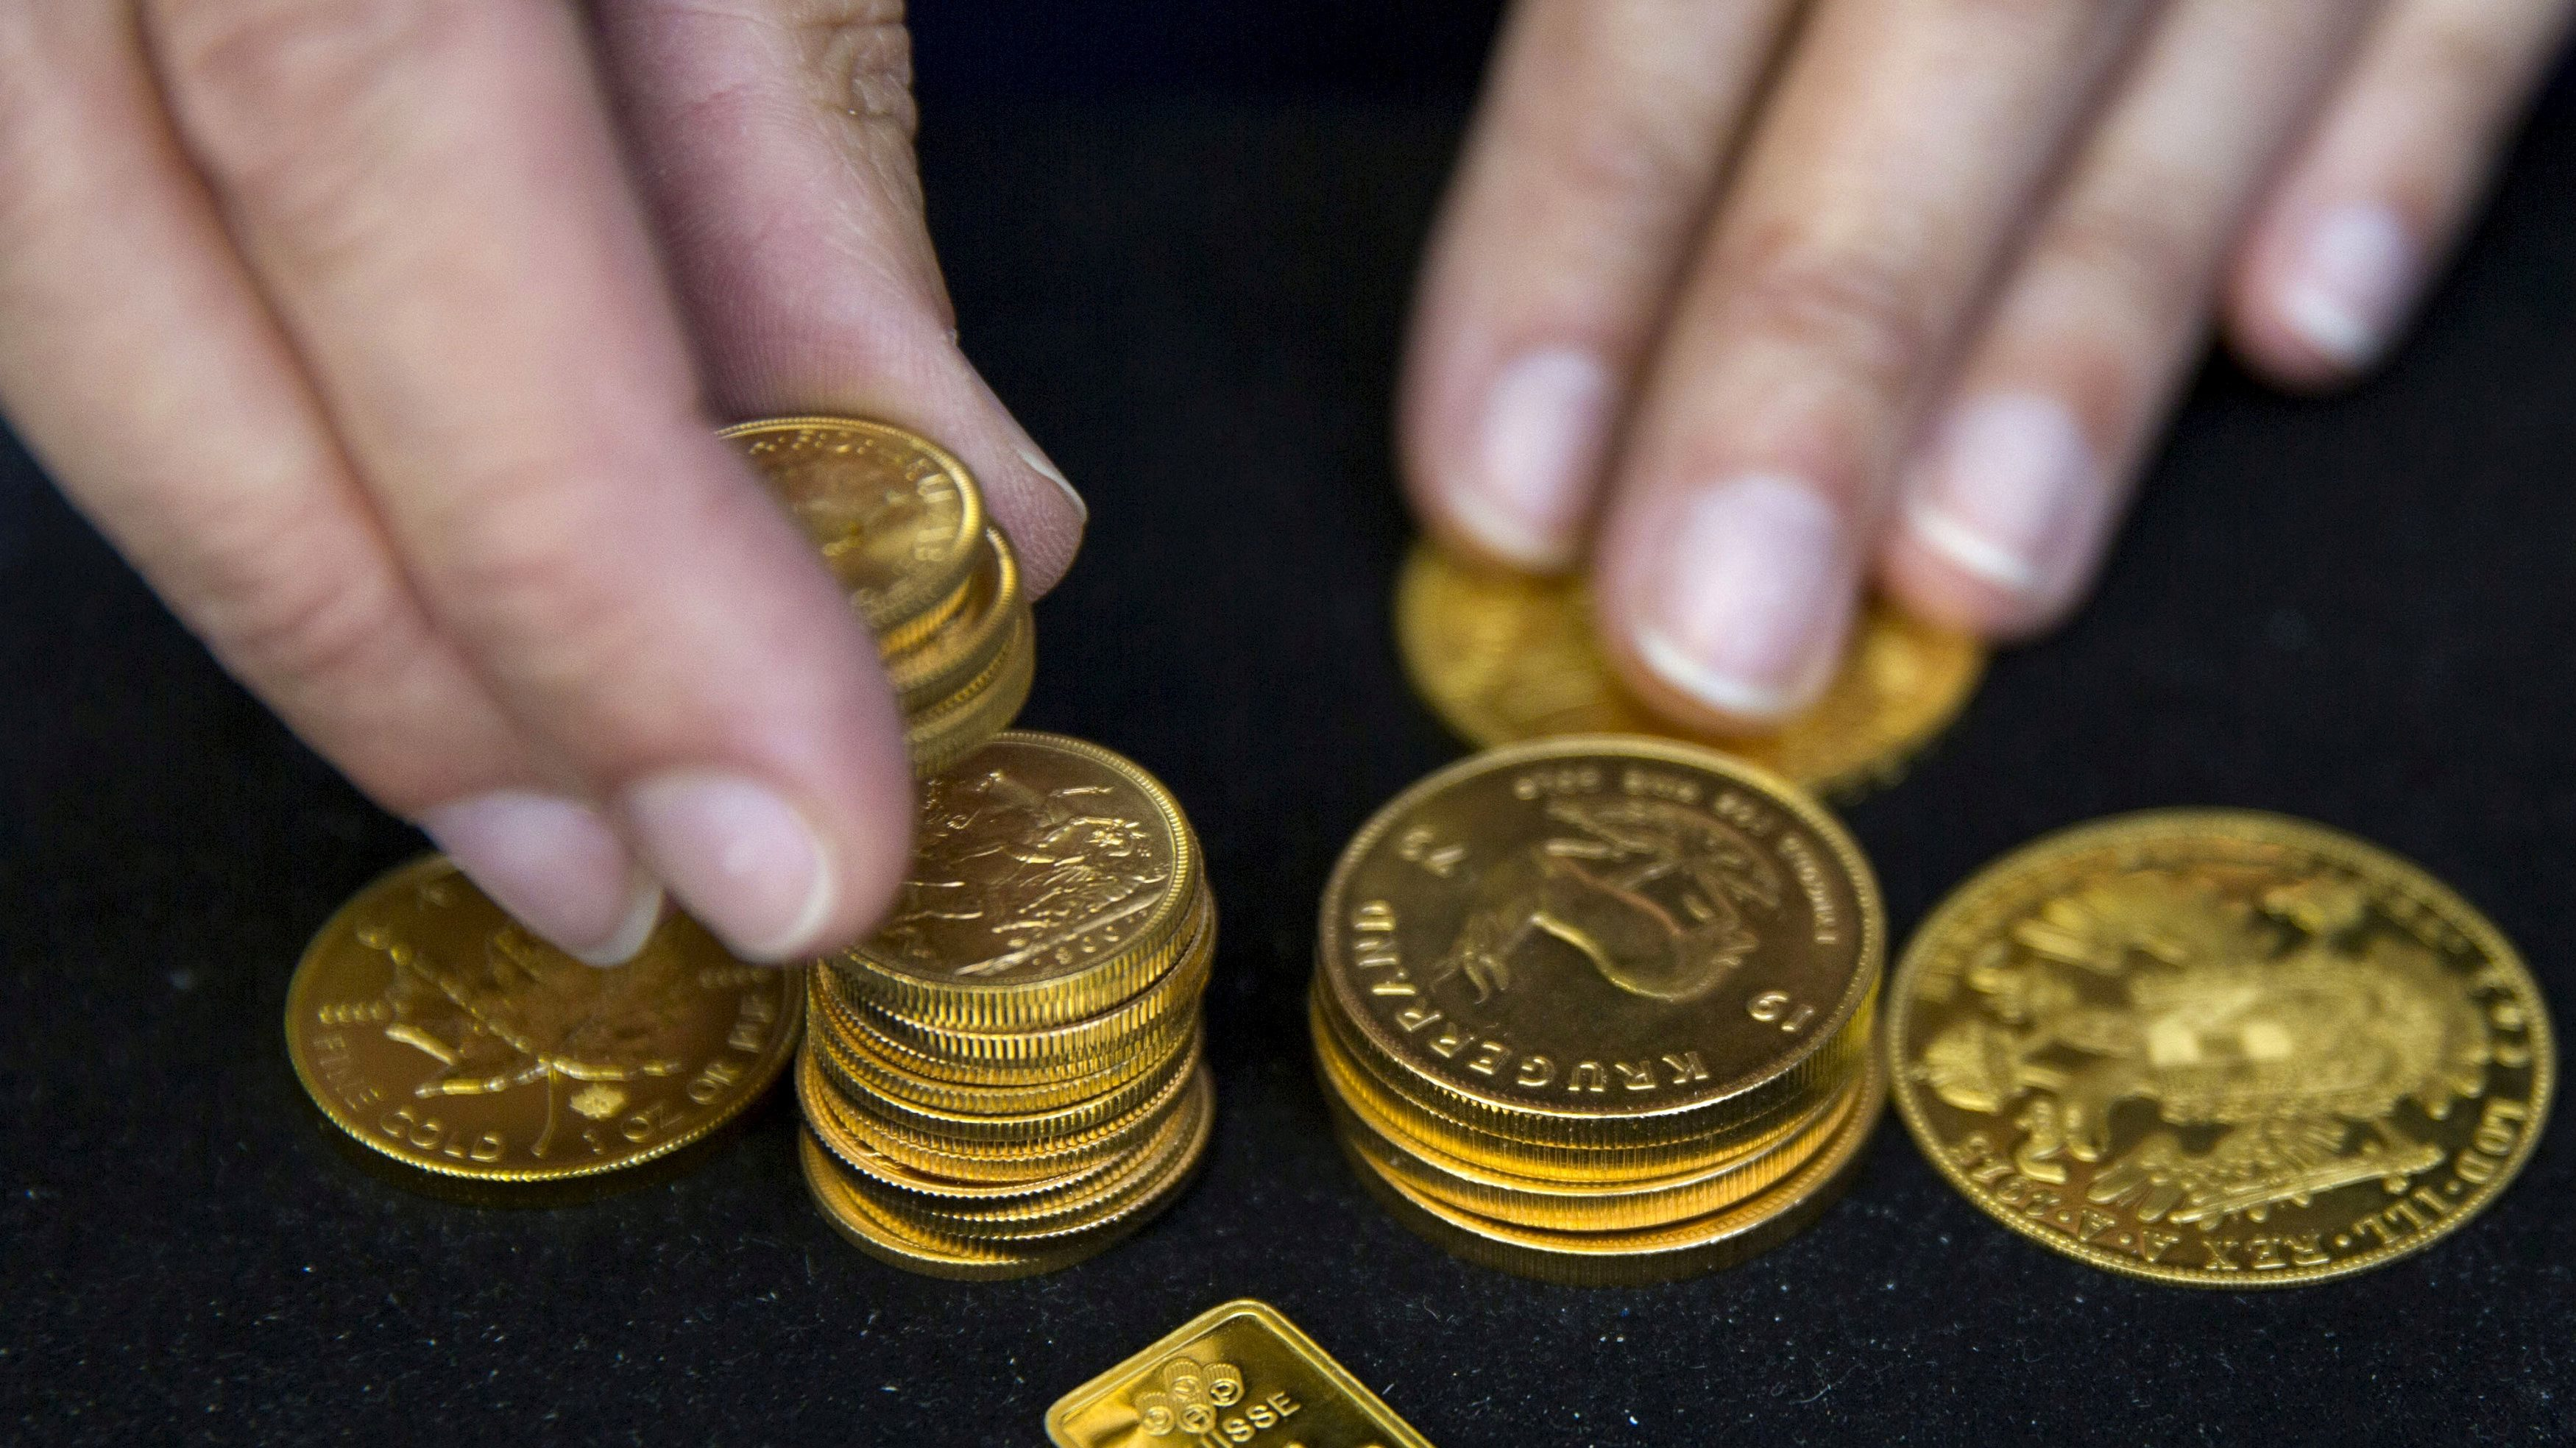 A worker places gold coins on display at Hatton Garden Metals precious metal dealers in London, Britain July 21, 2015. REUTERS/Neil Hall/File Photo - D1AETMHCTHAA